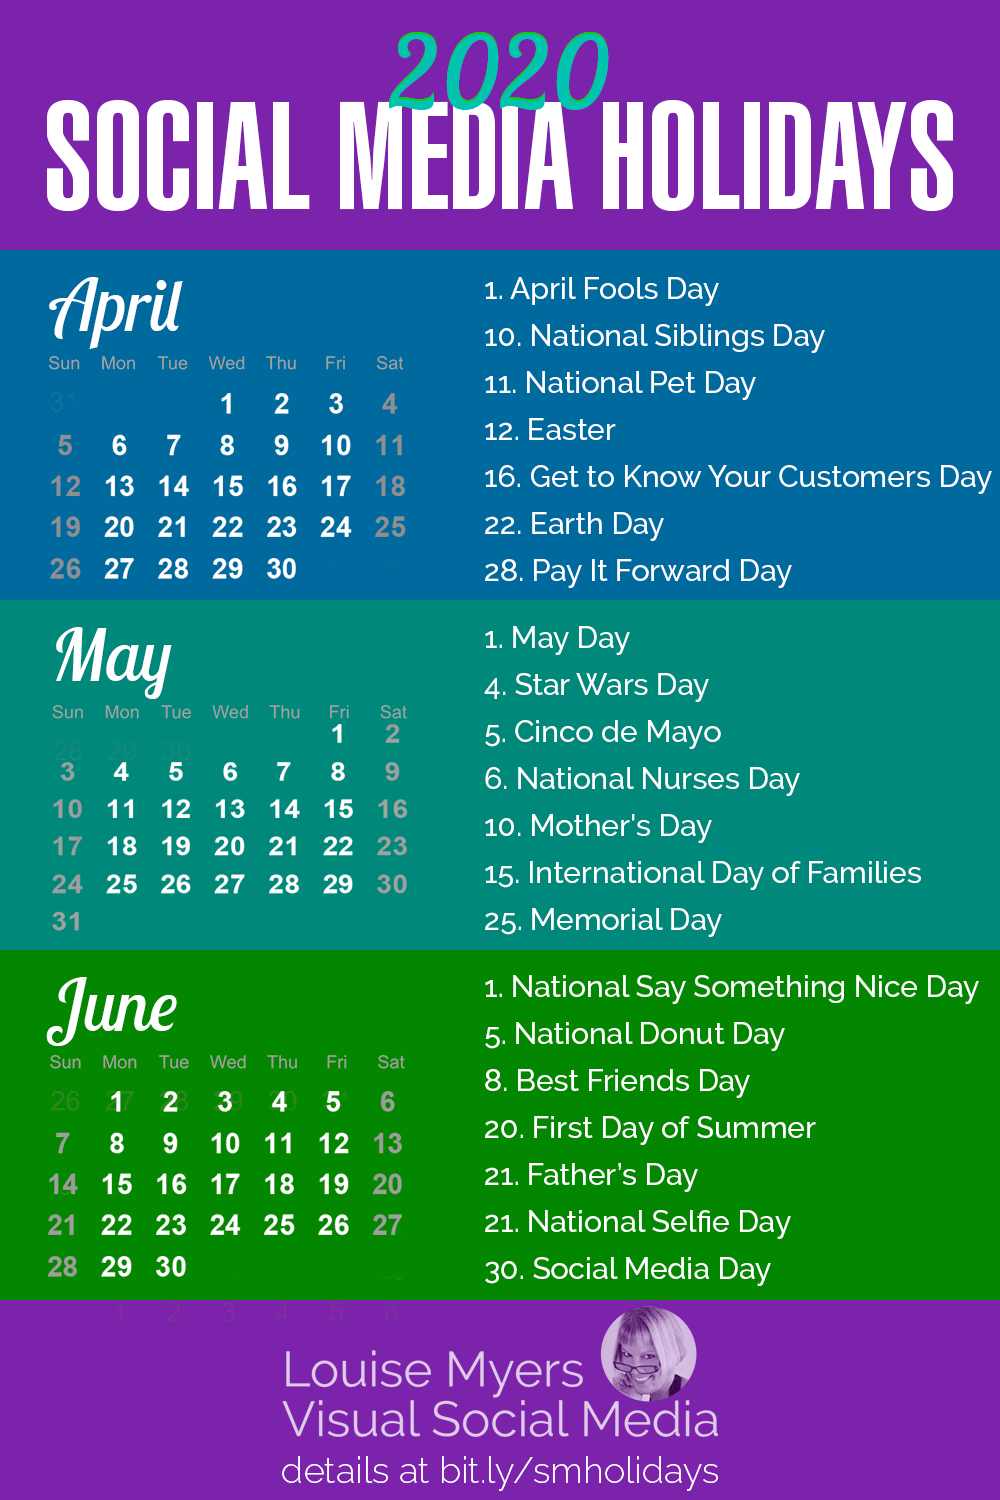 84 Social Media Holidays You Need In 2020: Indispensable! in National Day Calendar June 2020